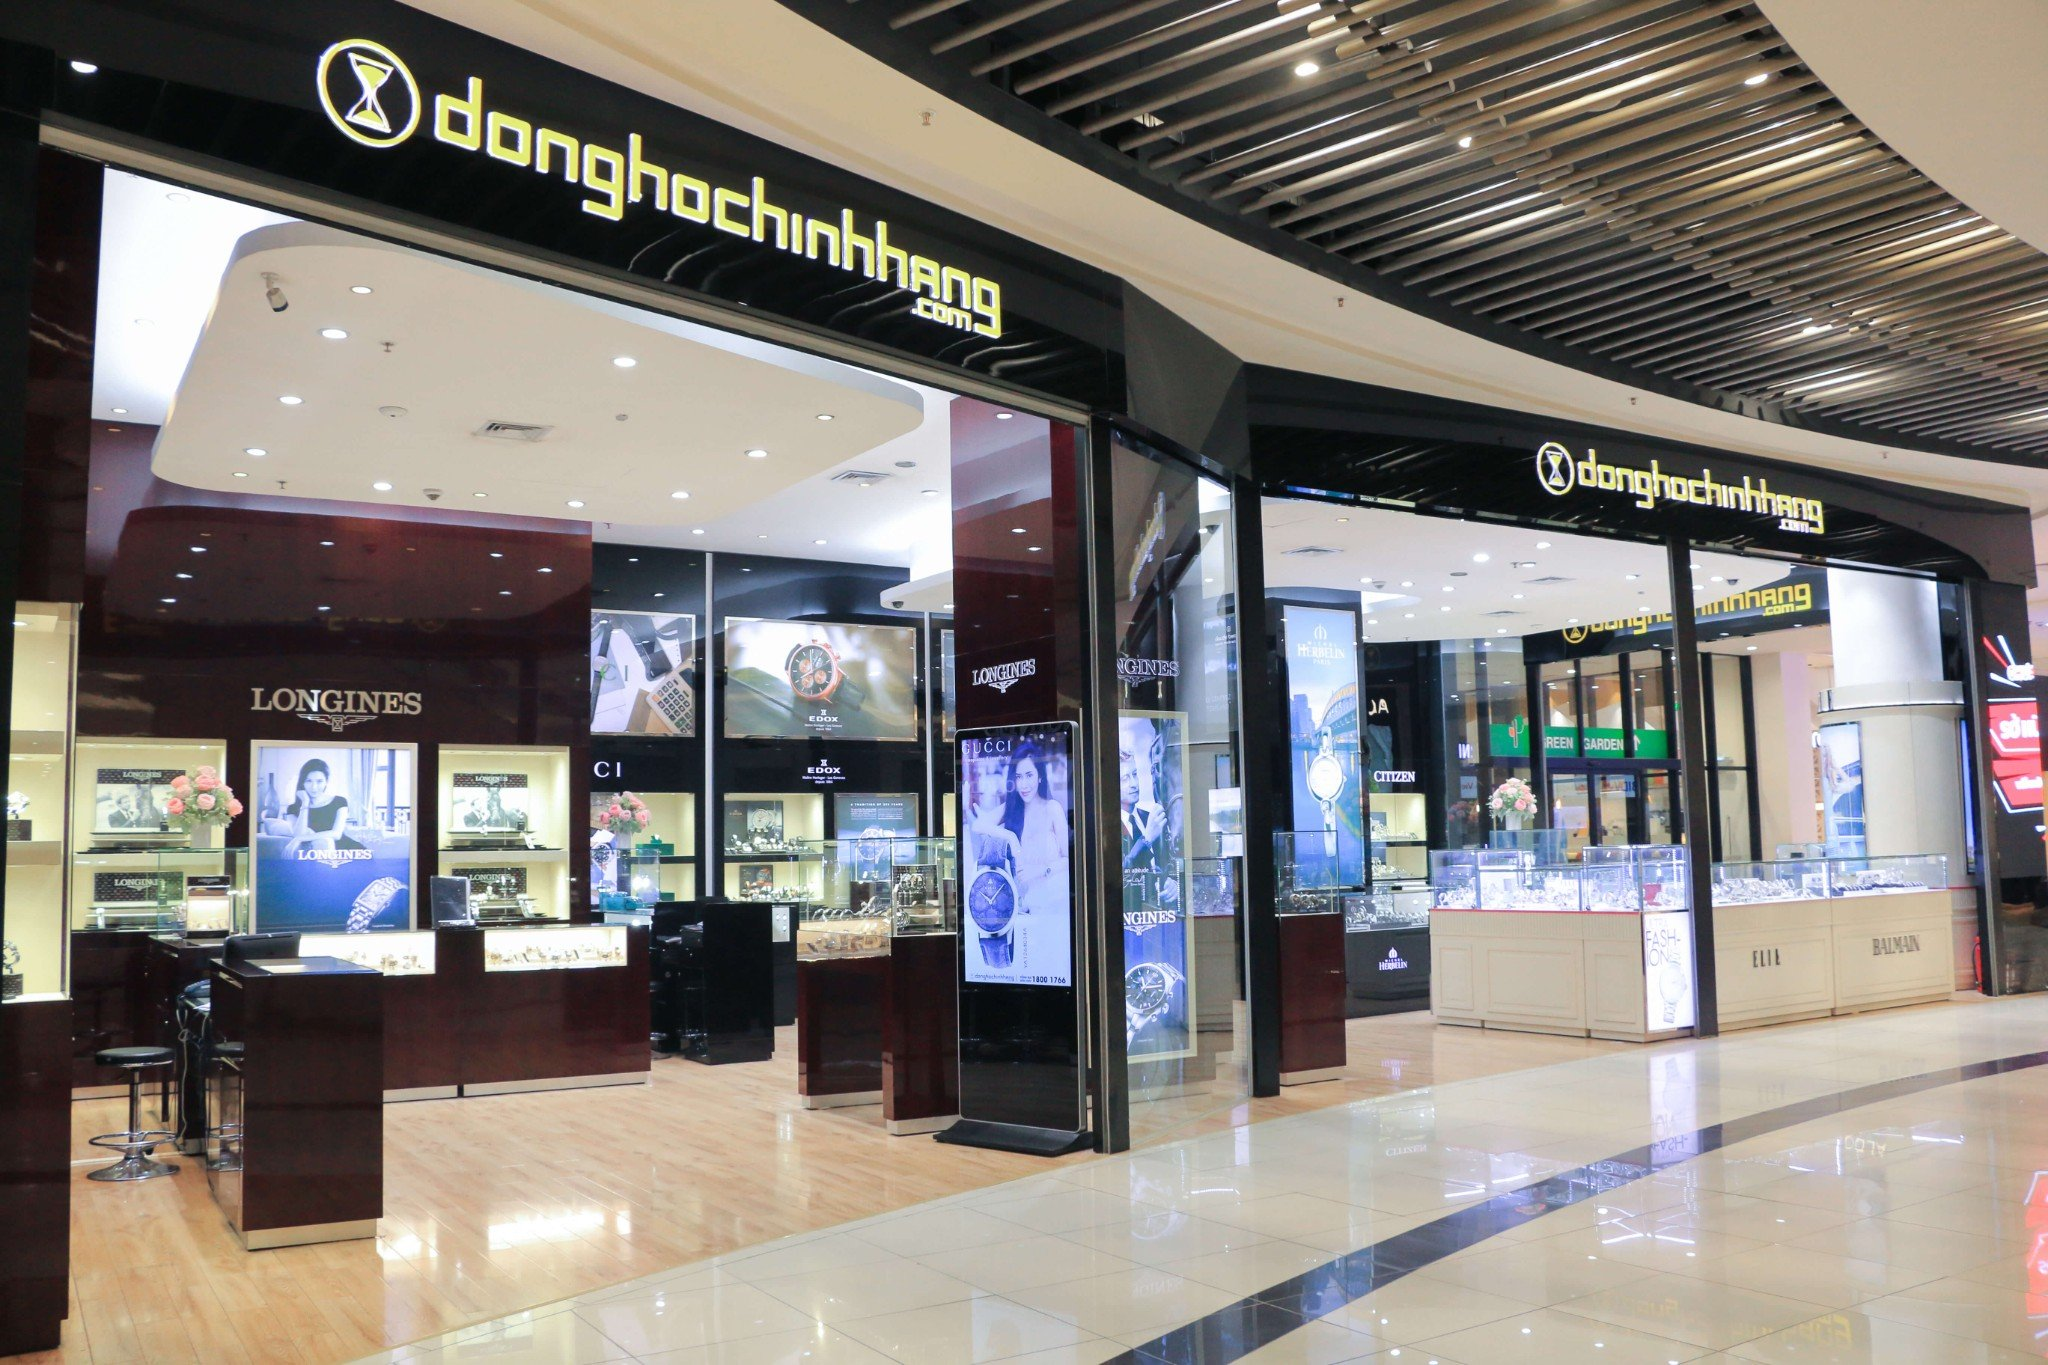 Showroom Donghochinhhang.com – Aeon Mall Long Biên